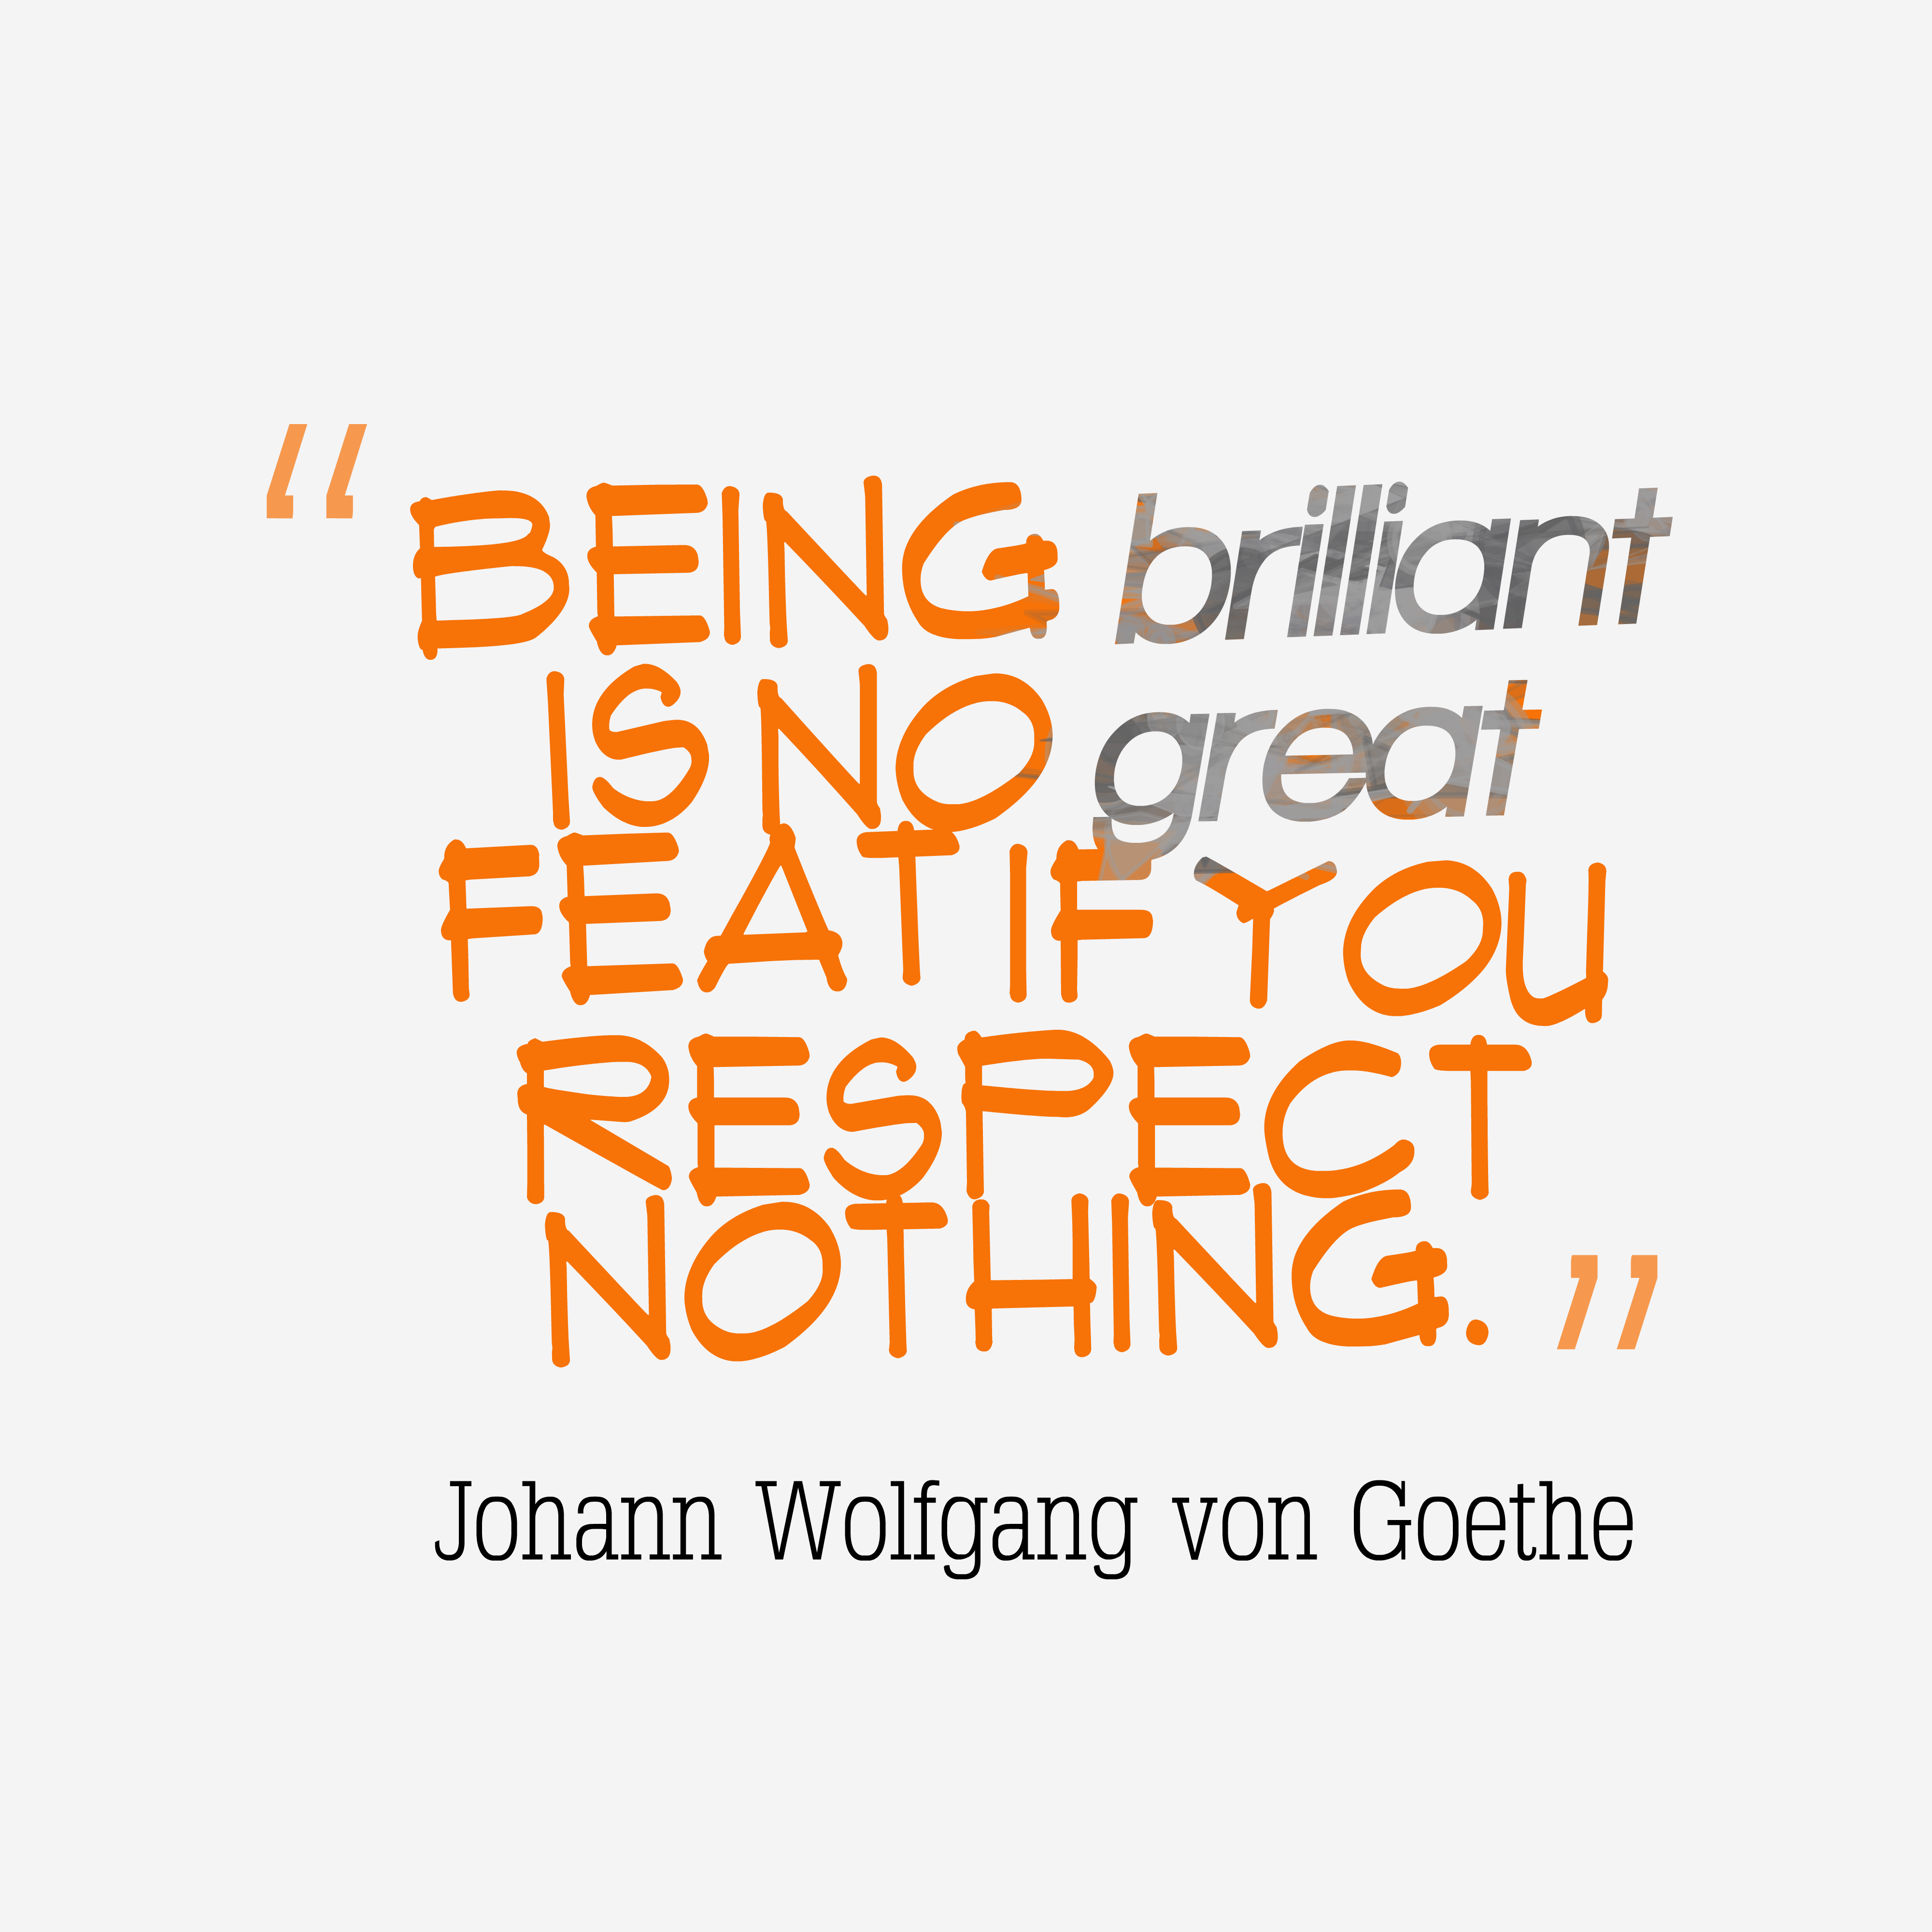 Quotes image of Being brilliant is no great feat if you respect nothing.